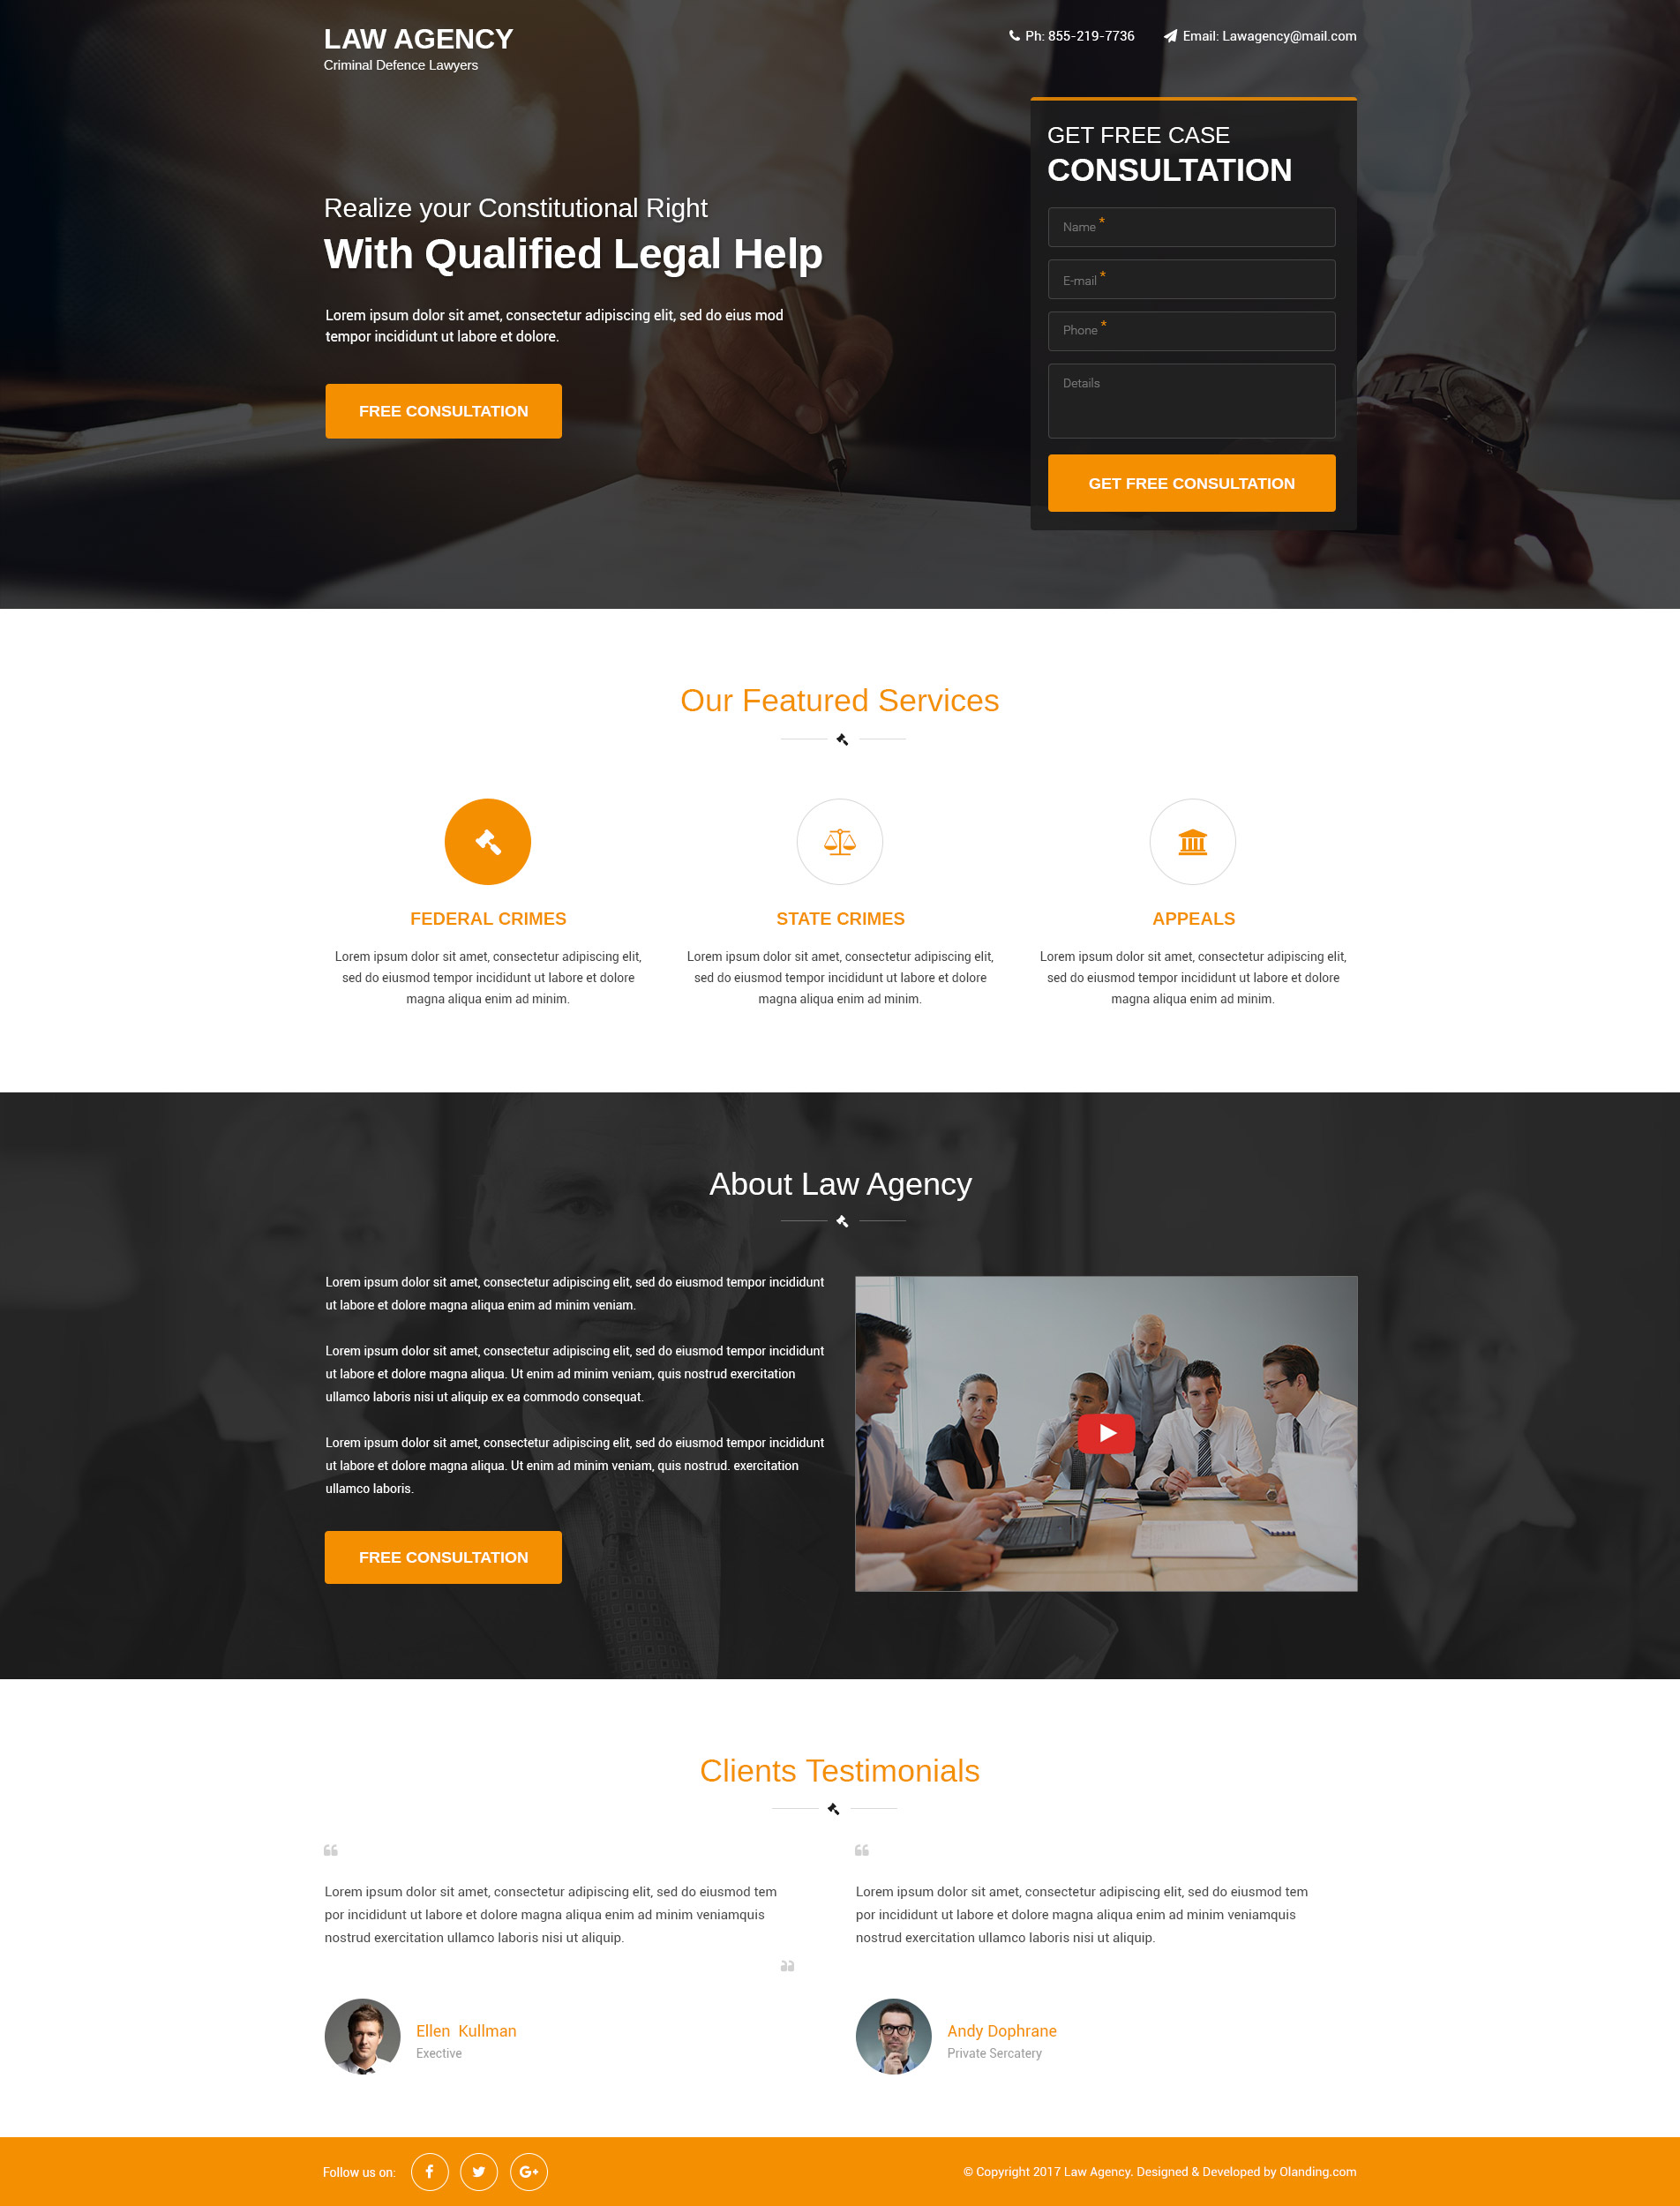 law agency landing page